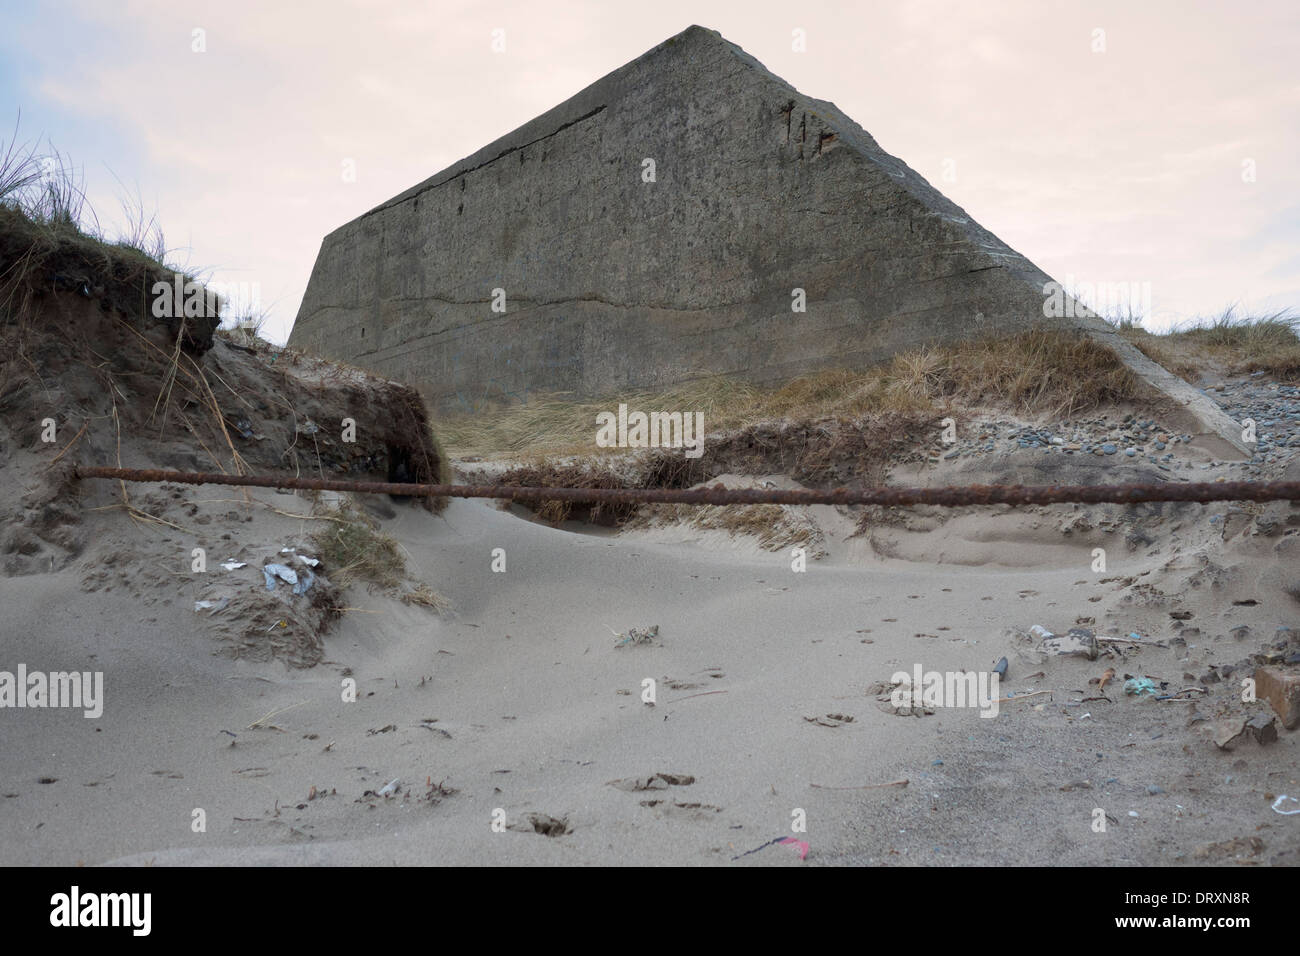 World War II Trapezoidal Concrete wall as part of the 200 yard moving target air gunnery training range at Hell's Mouth - Stock Image